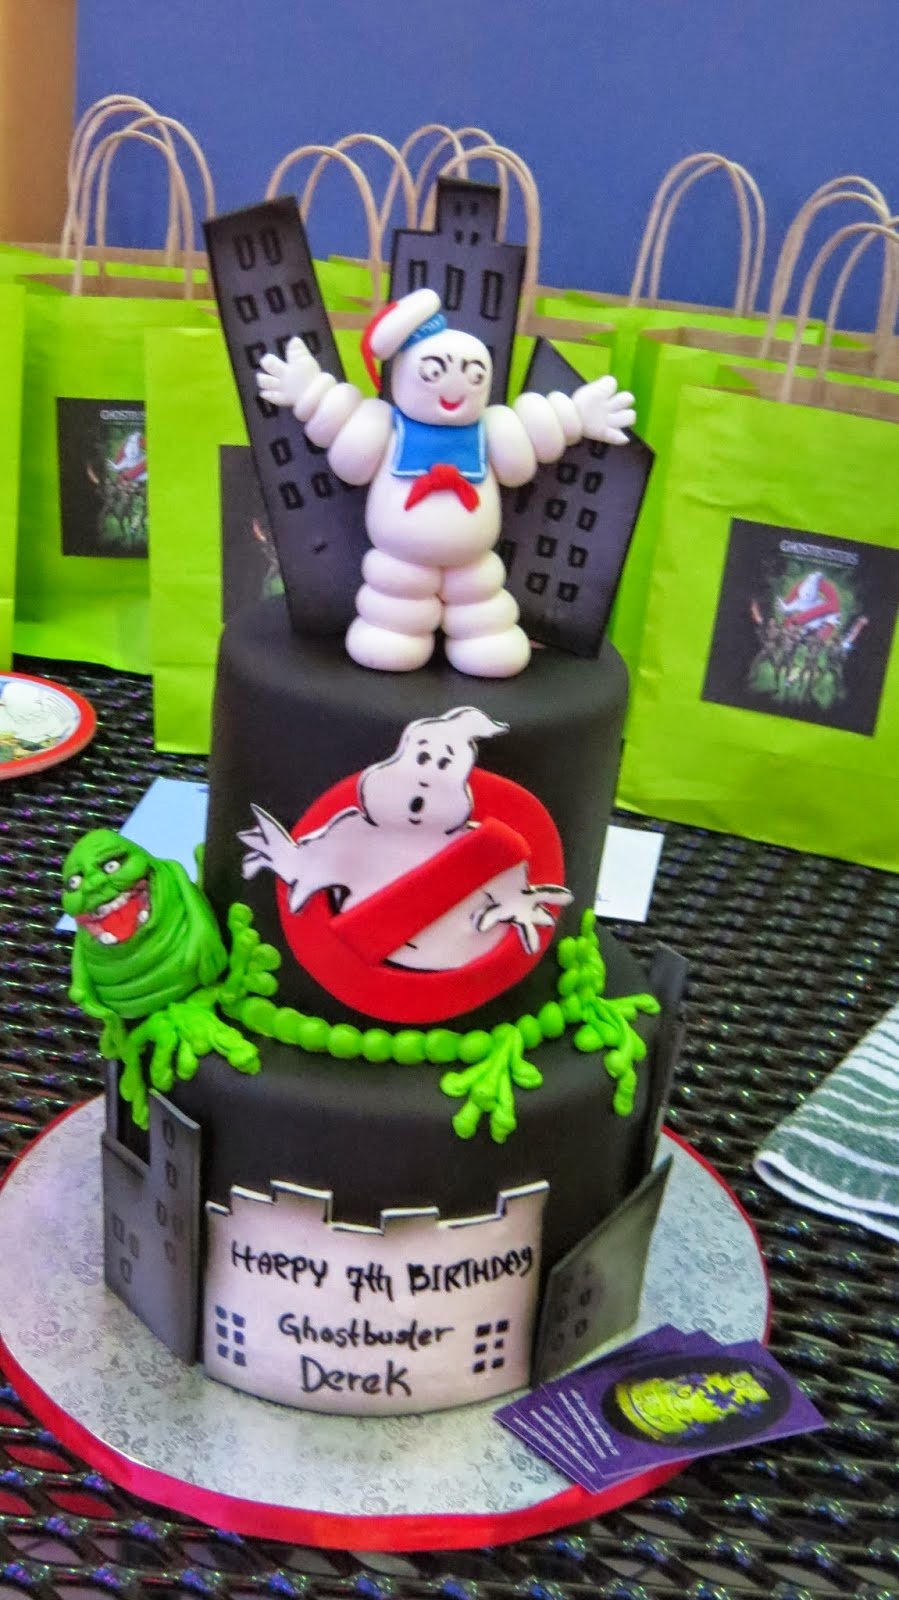 Ghostbuster theme birthday party for Decoration ideas 7th birthday party